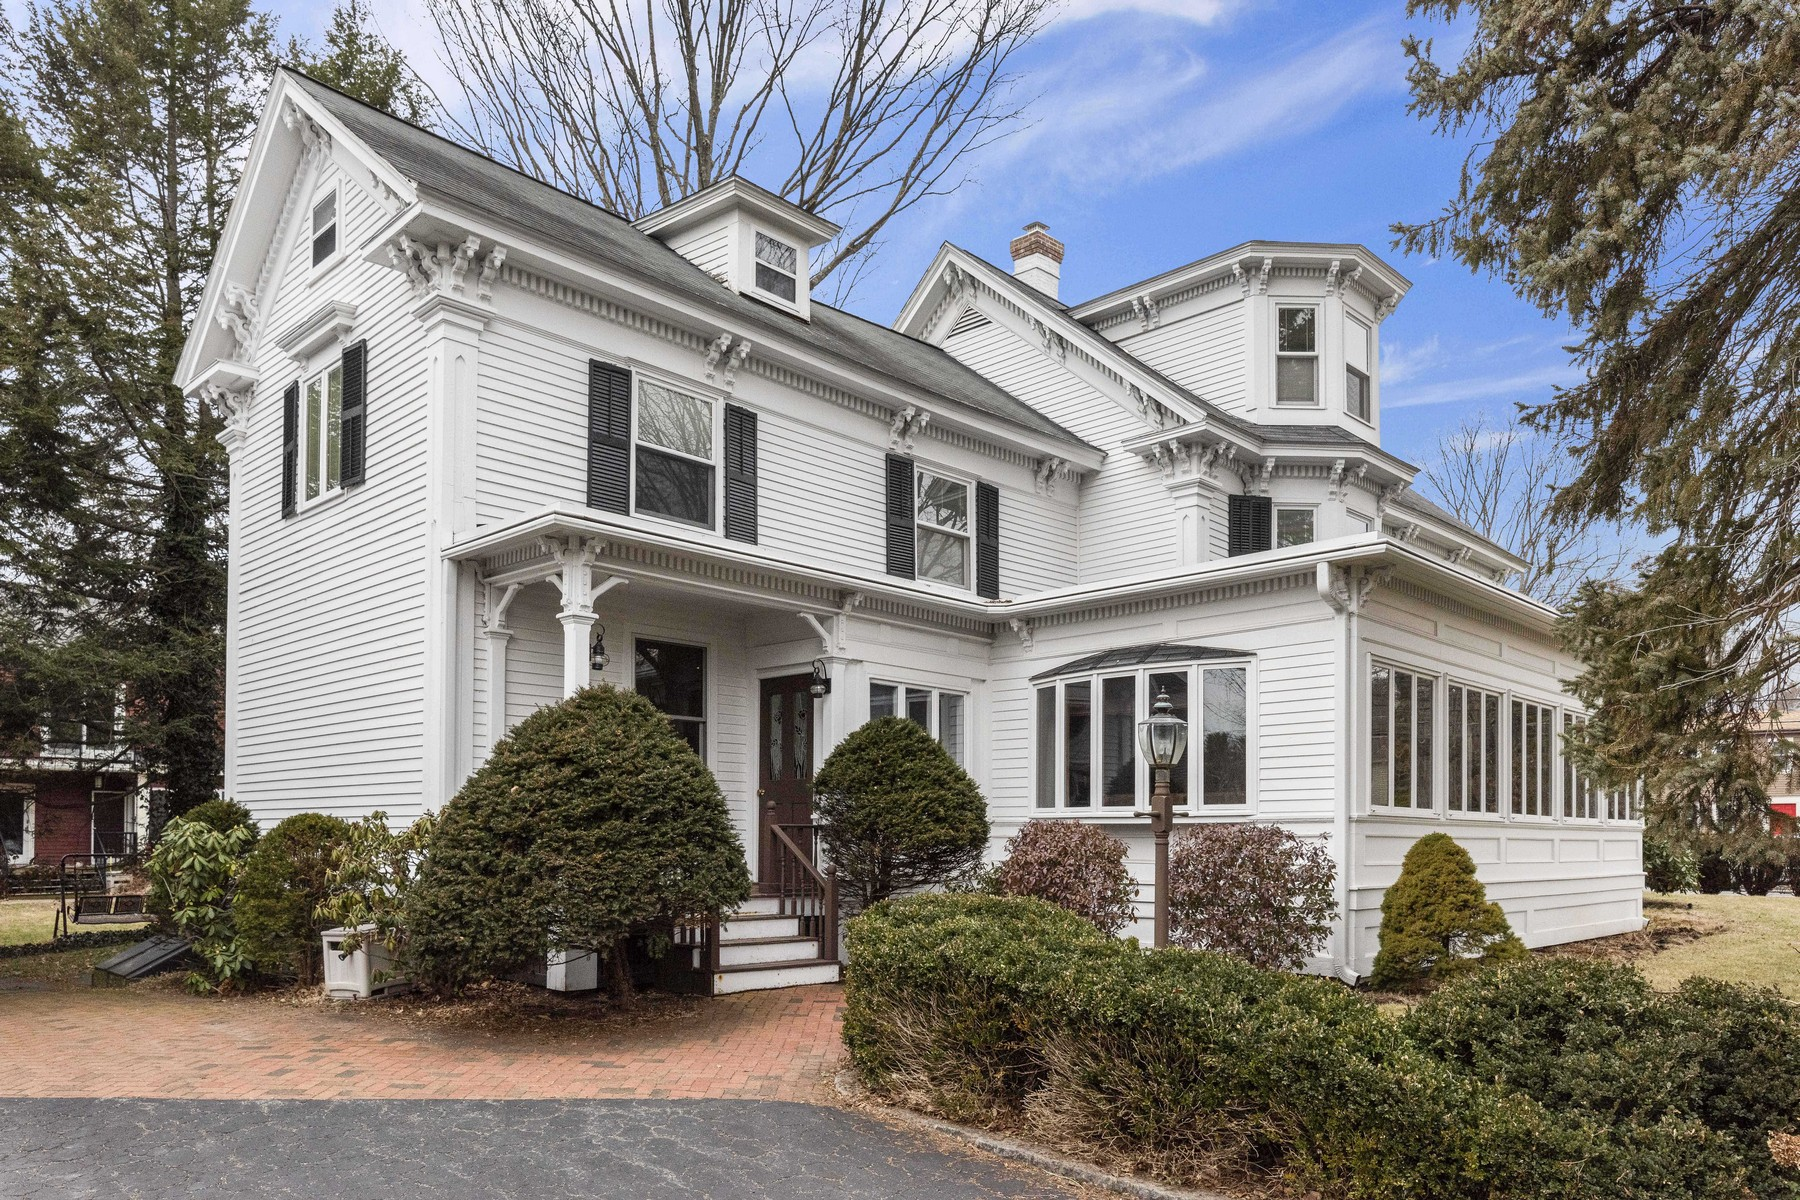 Single Family Homes for Active at Striking Victorian 76 West Main Street Westborough, Massachusetts 01581 United States